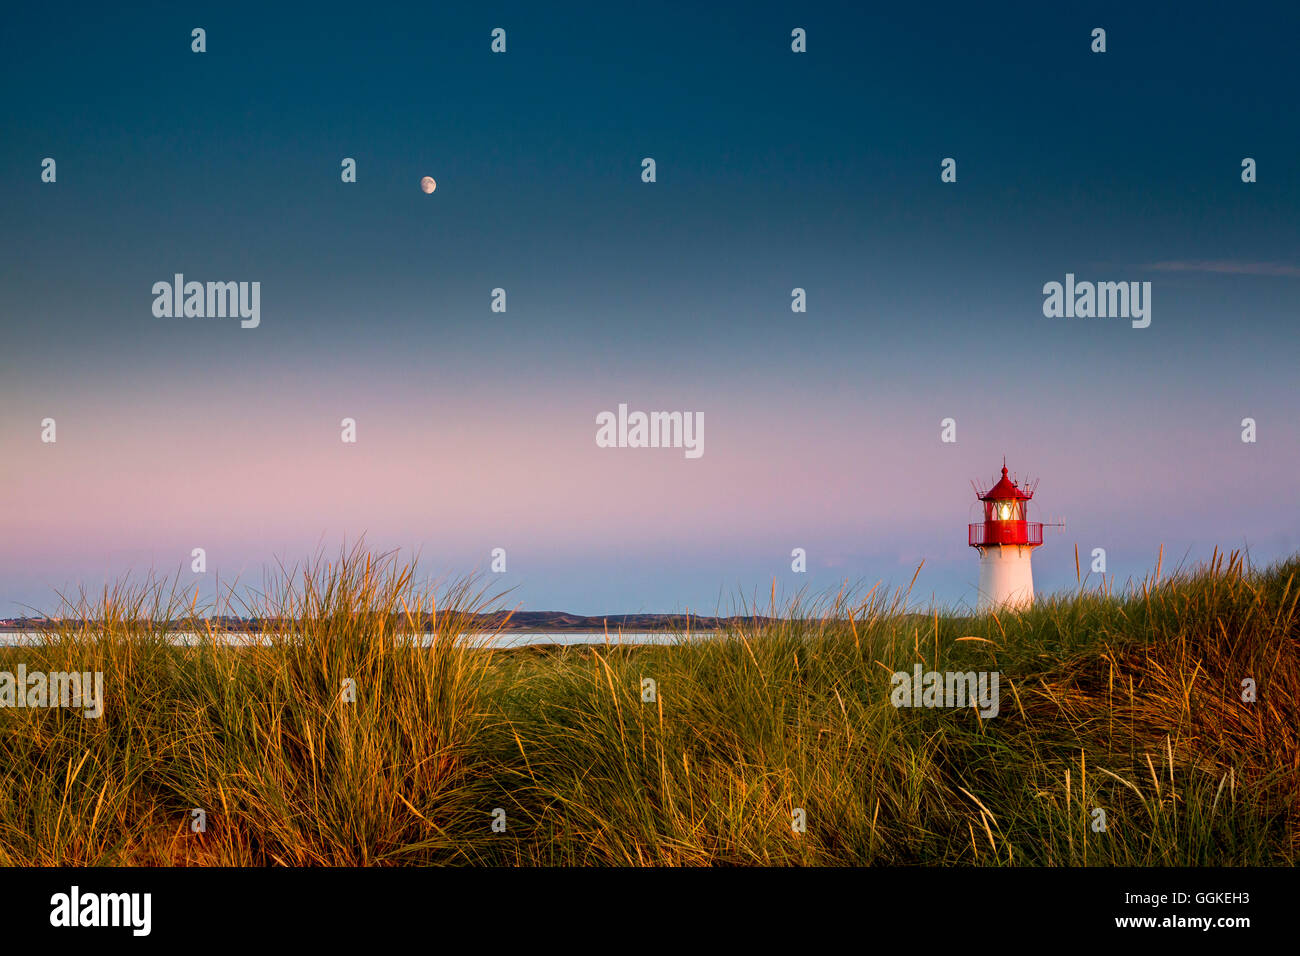 Lighthouse List west , Ellenbogen, Sylt Island, North Frisian Islands, Schleswig-Holstein, Germany - Stock Image